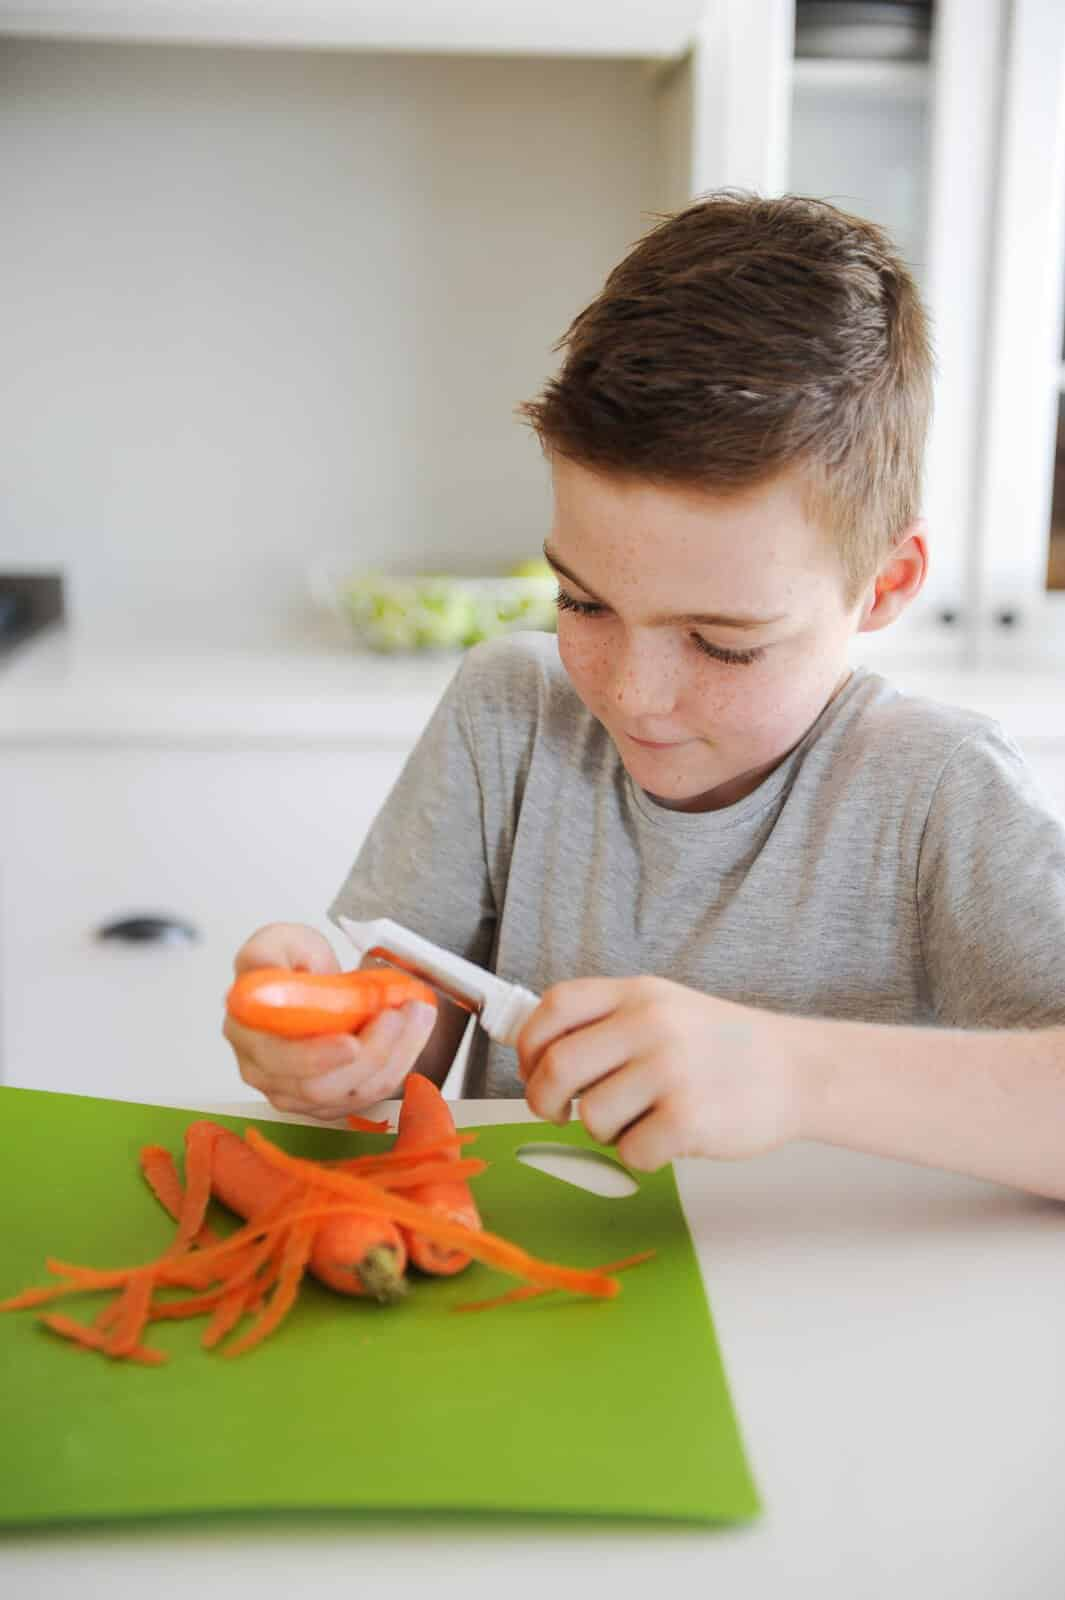 a young boy slicing carrots in a kitchen